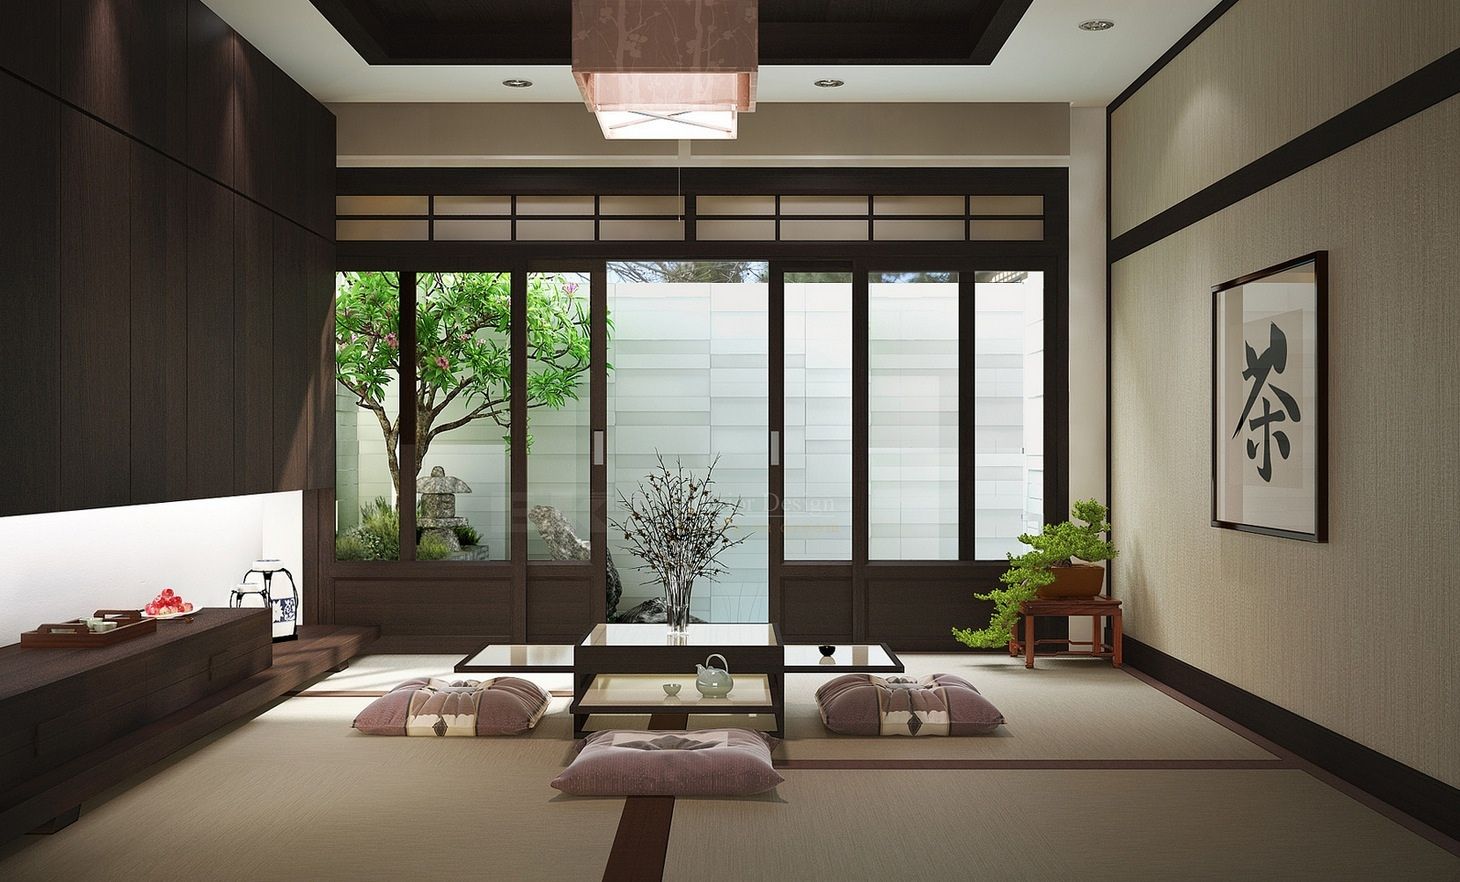 Zen inspired interior design for Interieur ideeen kleuren